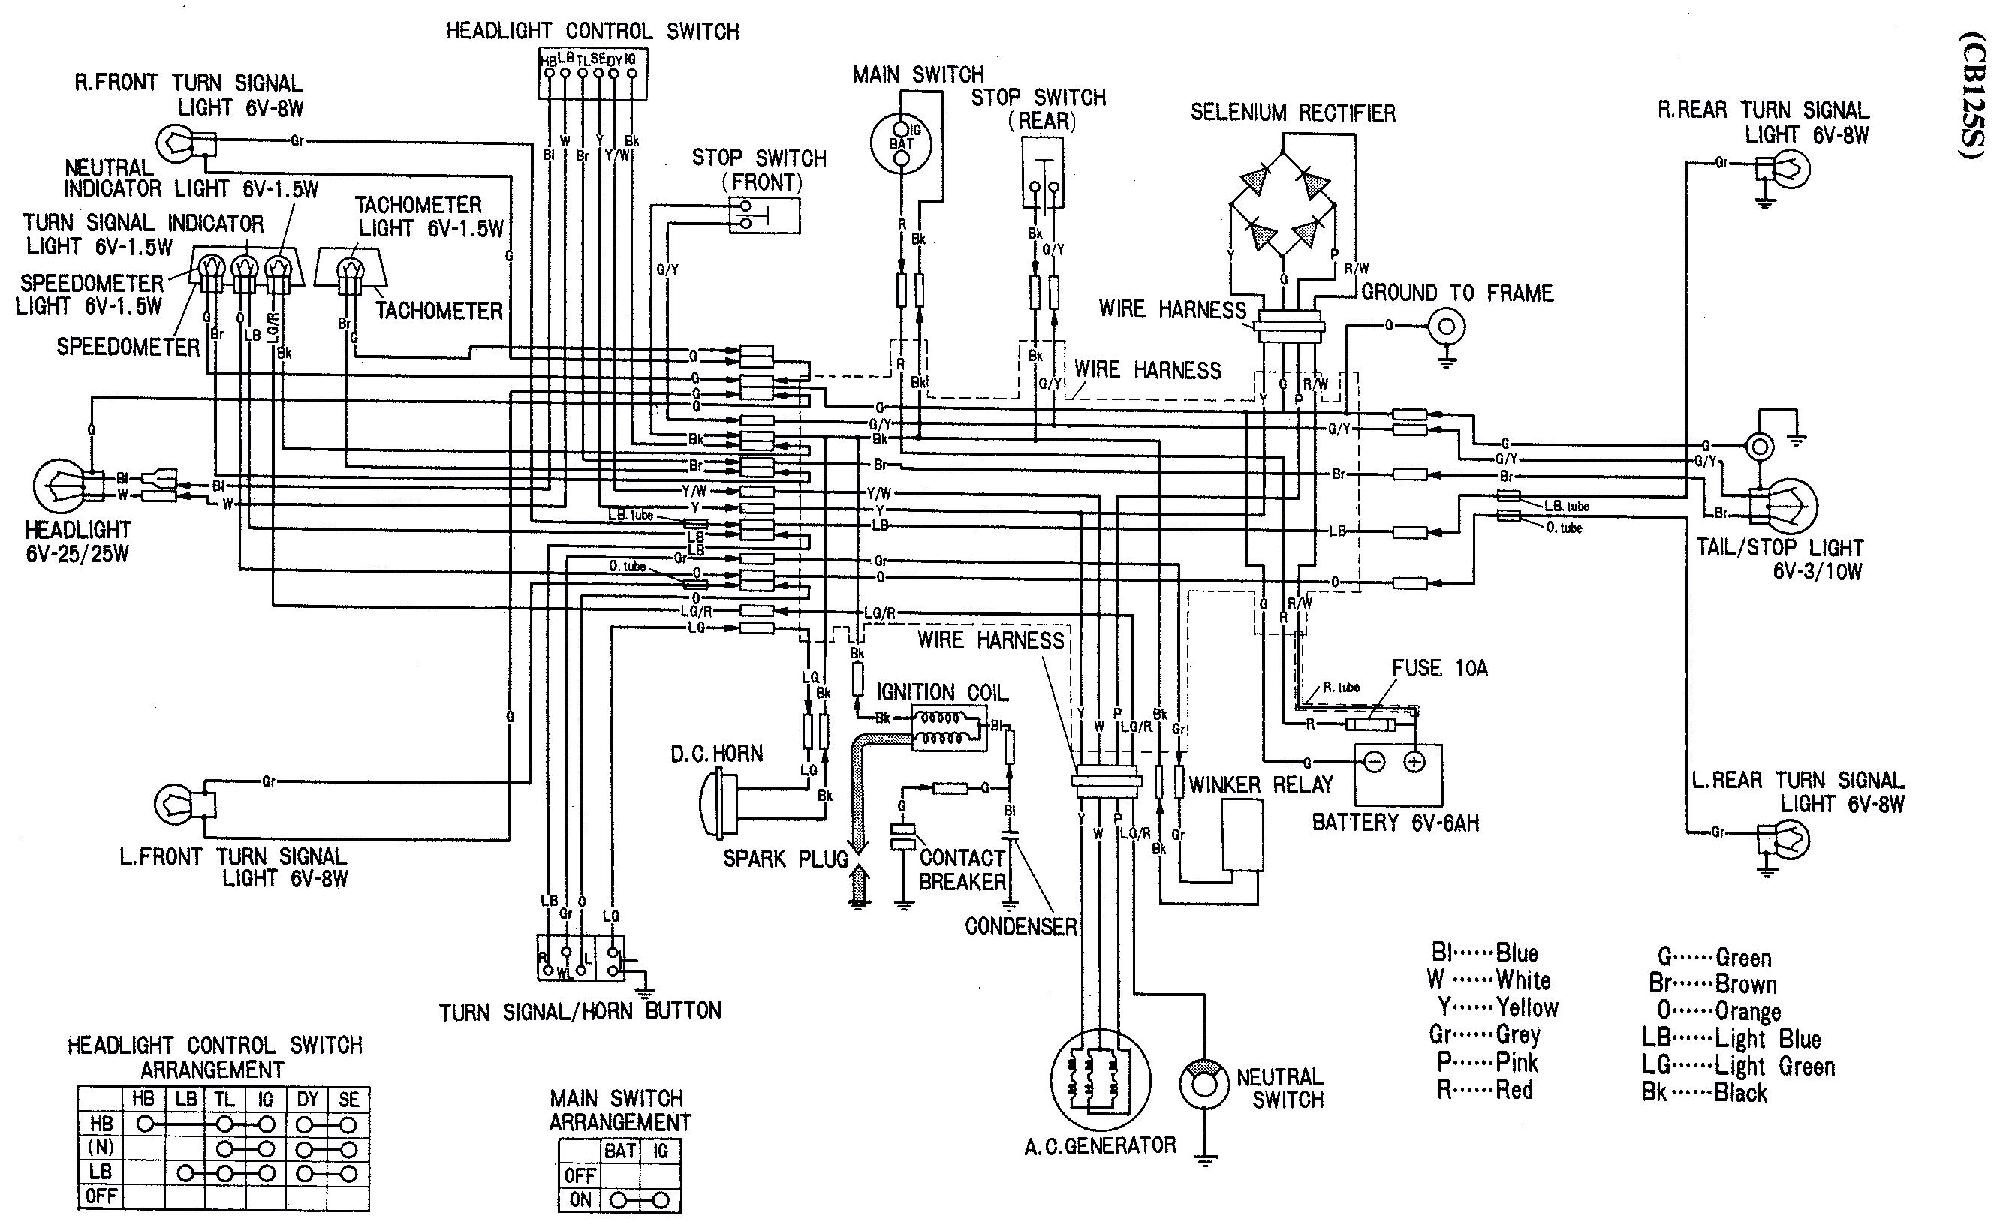 honda cb125tde superdream colour wiring diagram wiring schematic datahonda cb125tde superdream colour wiring diagram wiring diagram titan motorcycle wiring diagram honda cb125 wiring diagram